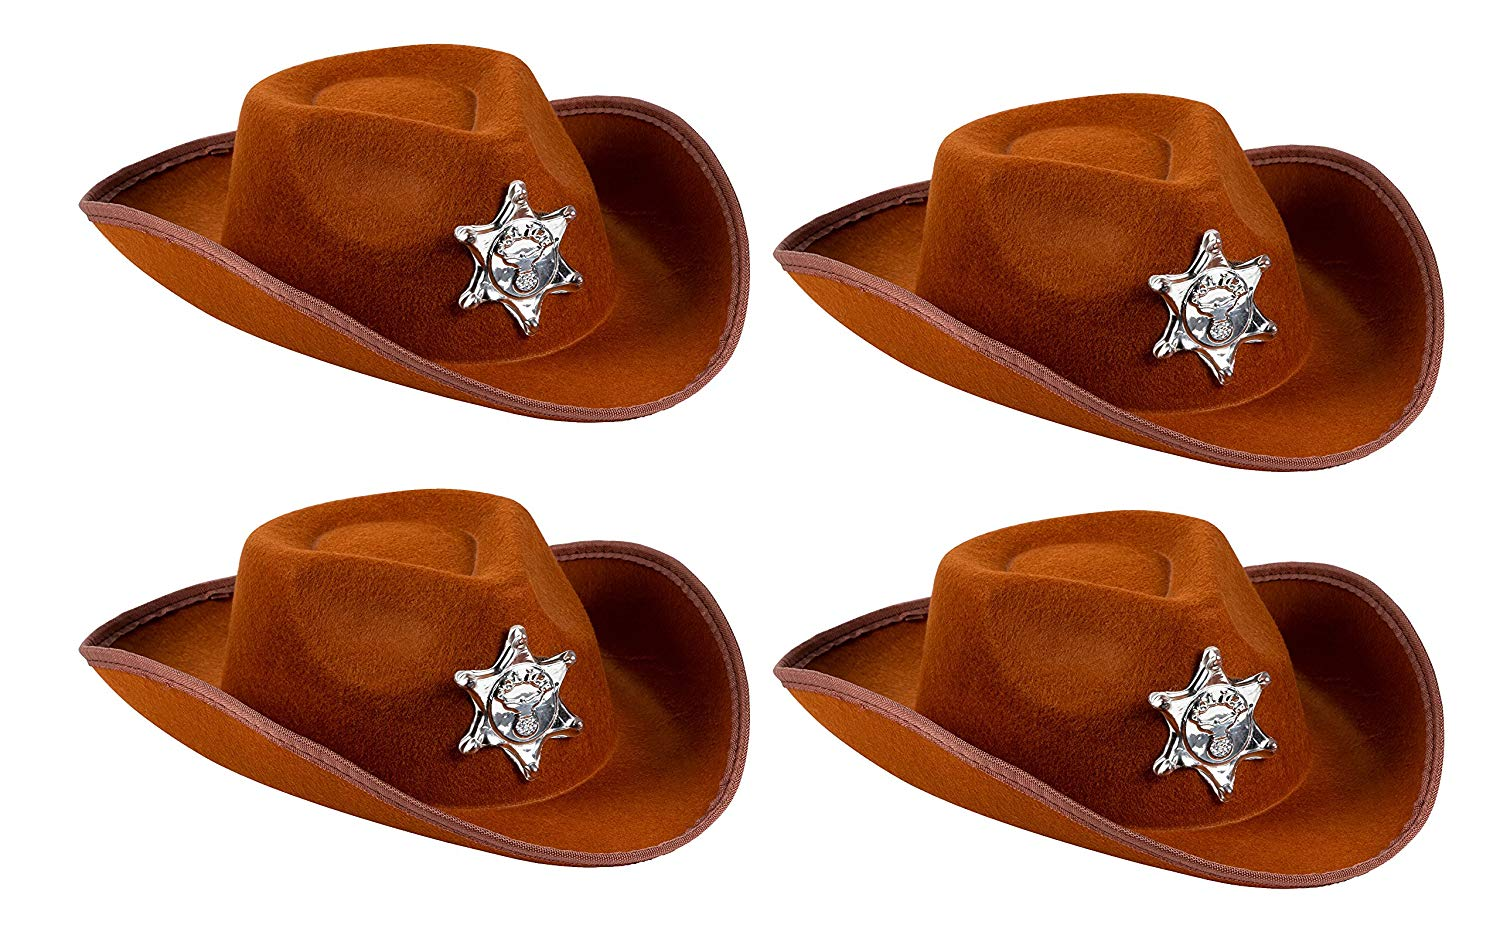 93e38383e717f Get Quotations · Cowboy Sheriff s Hat Kids - 4-Pack Novelty Children Cowboy  Western Hats Badge Birthdays